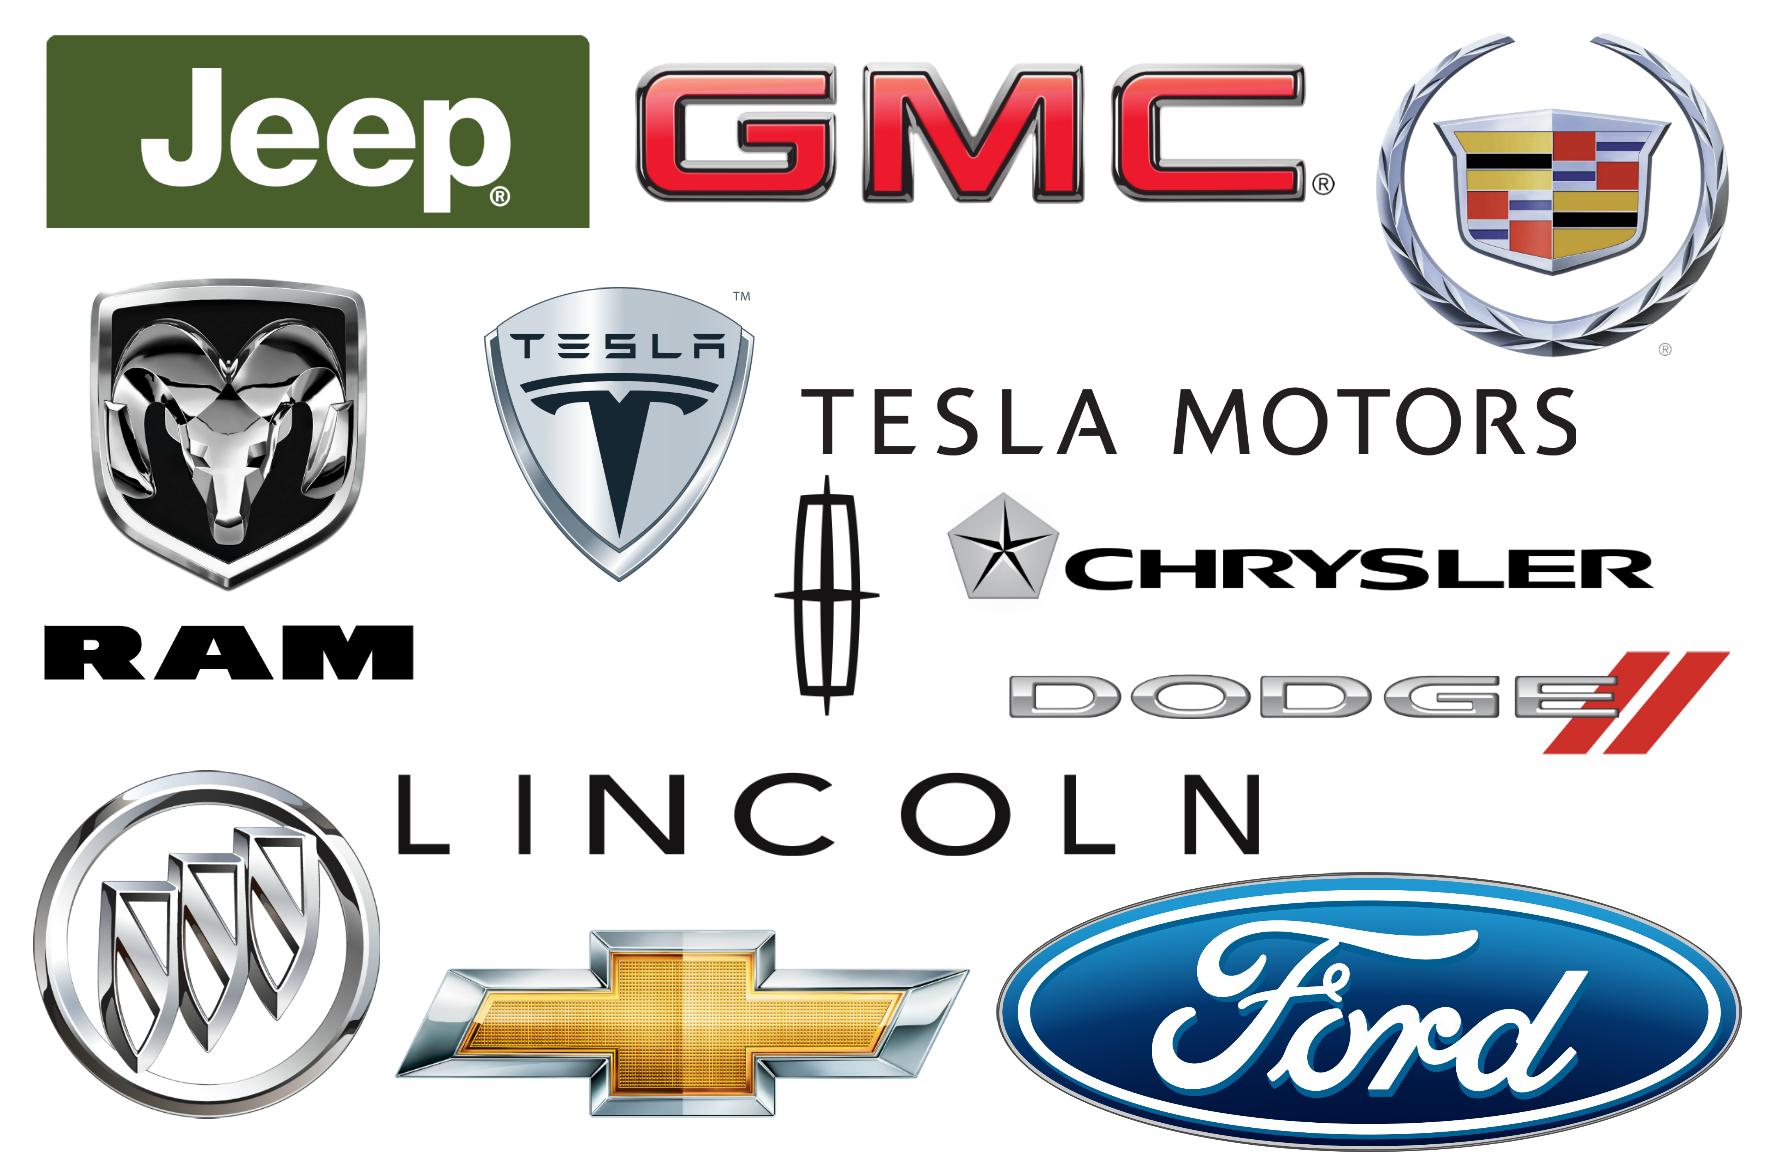 All Car Company >> American Car Brands Companies And Manufacturers Car Brand Names Com